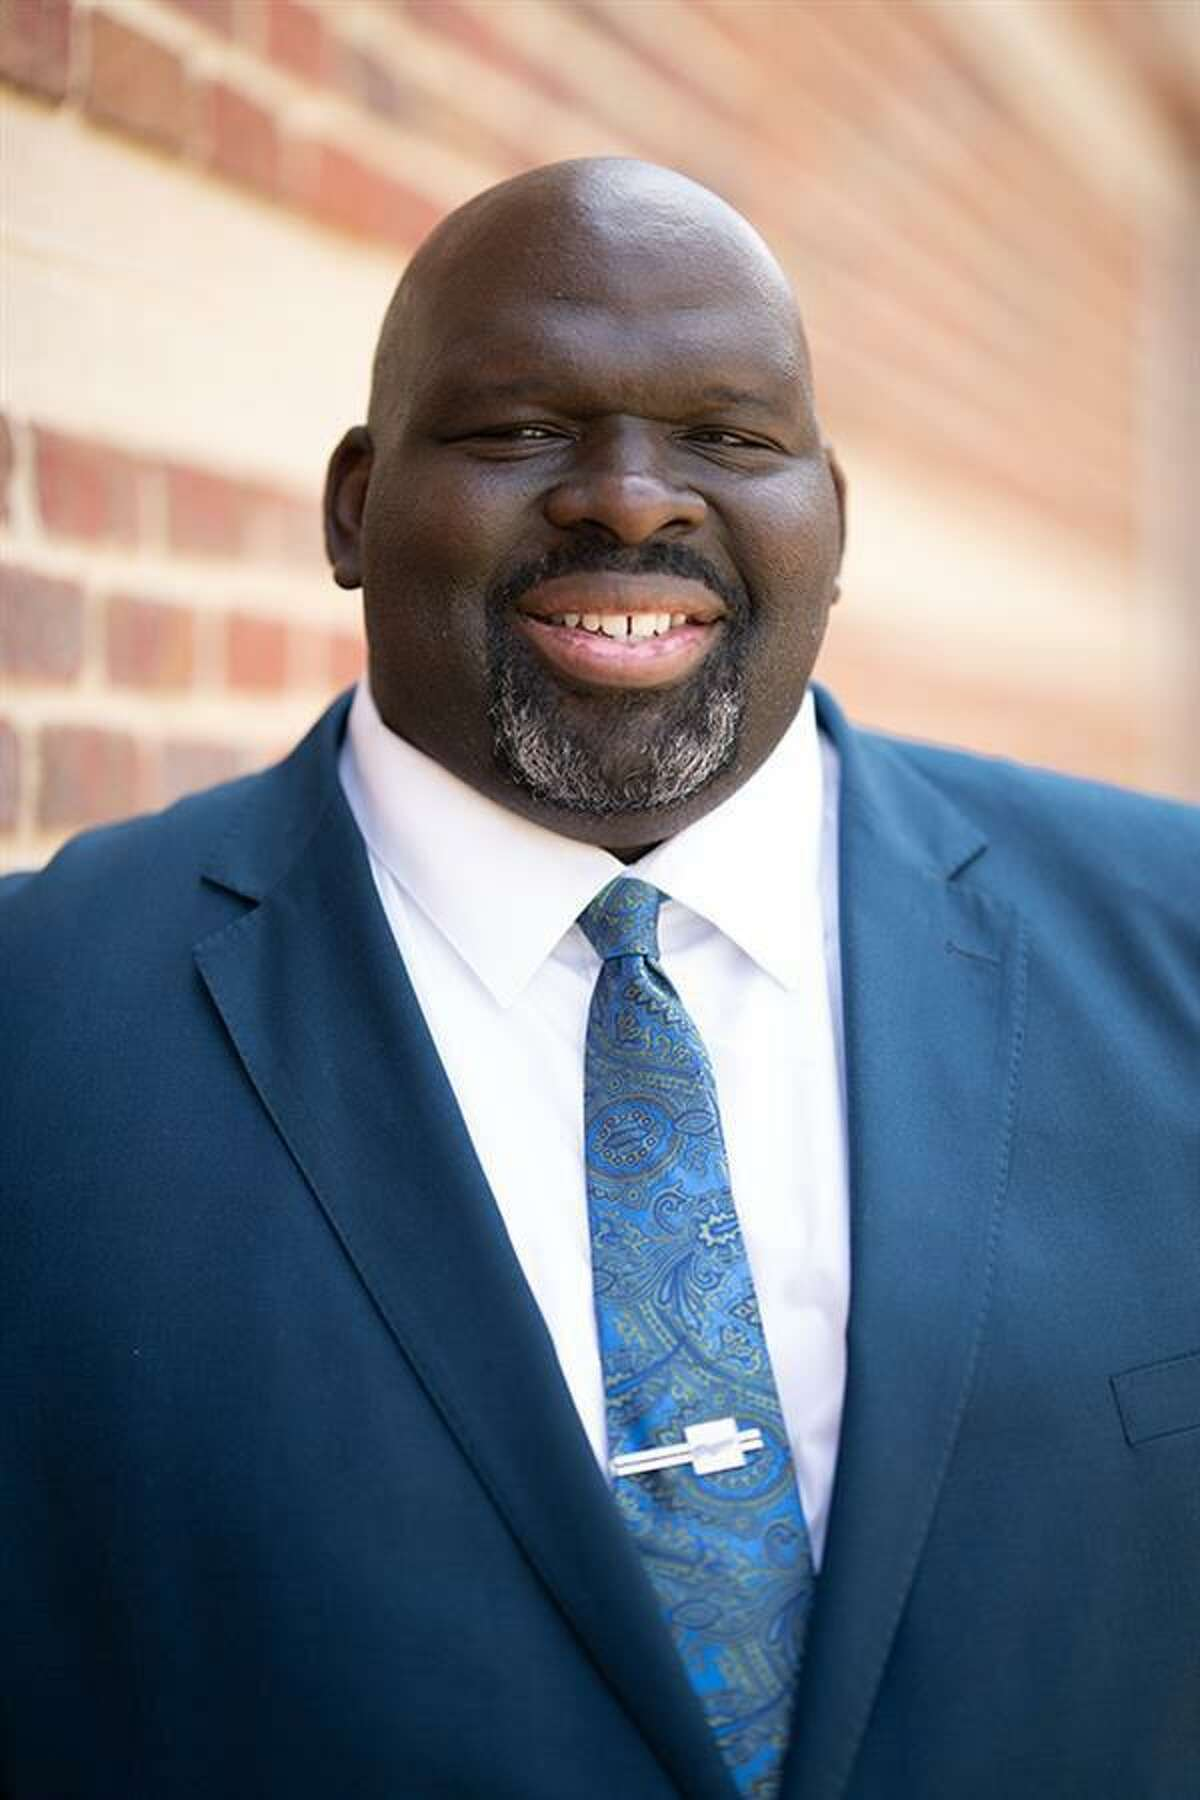 Dr. Roosevelt Nivens was named the lone finalist for Lamar CISD's superintendent position by the district's board of trustees on Tuesday, April 6. He has spent 24 years in public education.